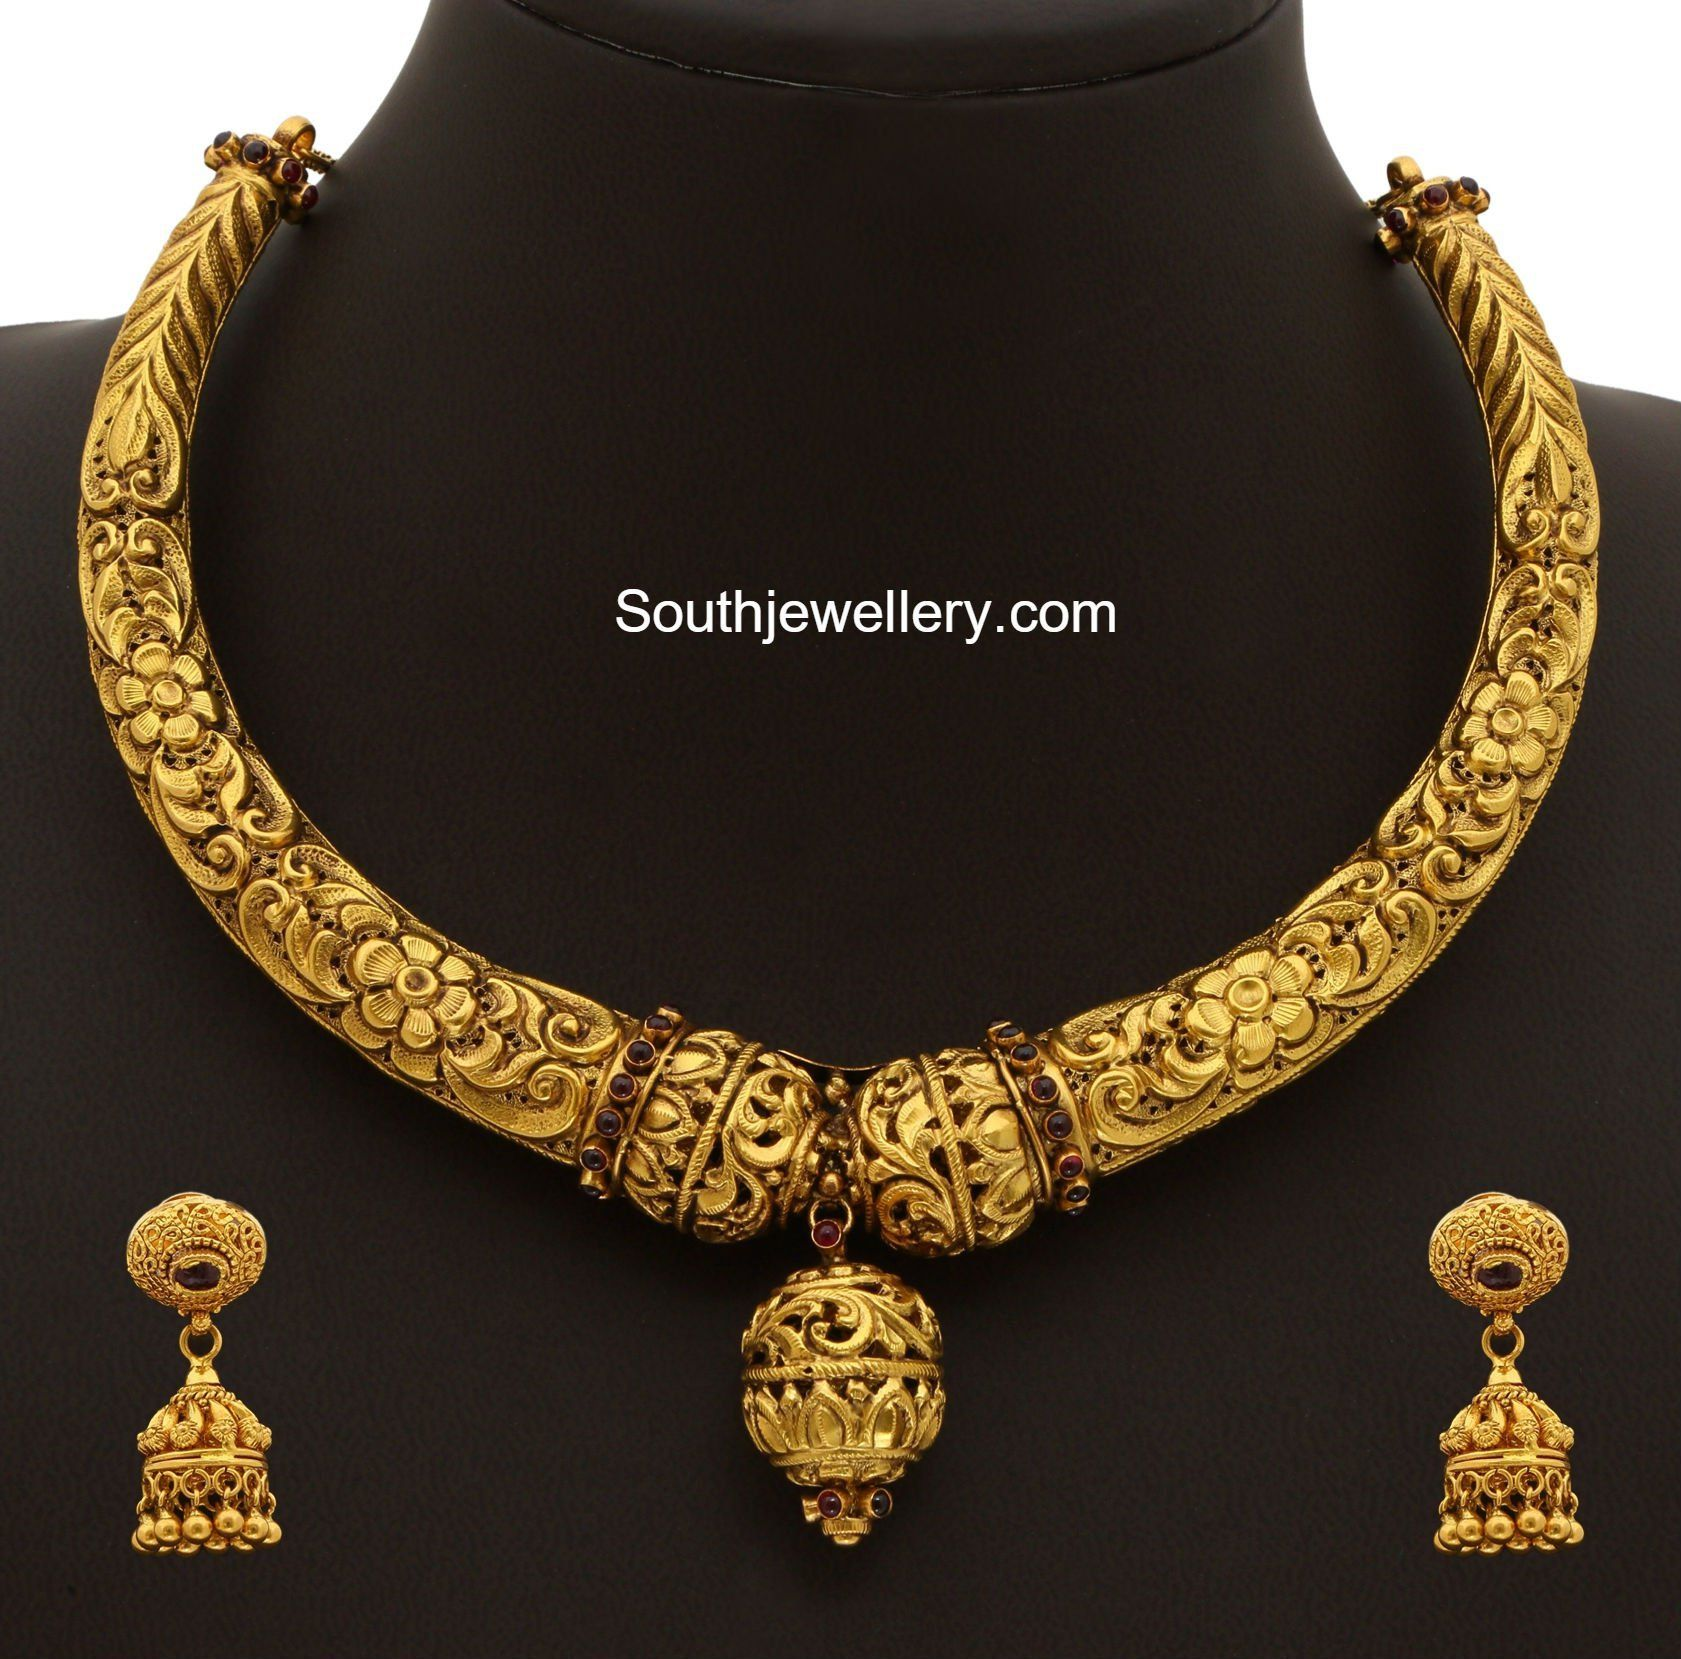 Top 25 Indian Antique Jewellery Designs For Women: Gold Kanthi Necklace 600x592 Photo Deepika. Dks Pinboard